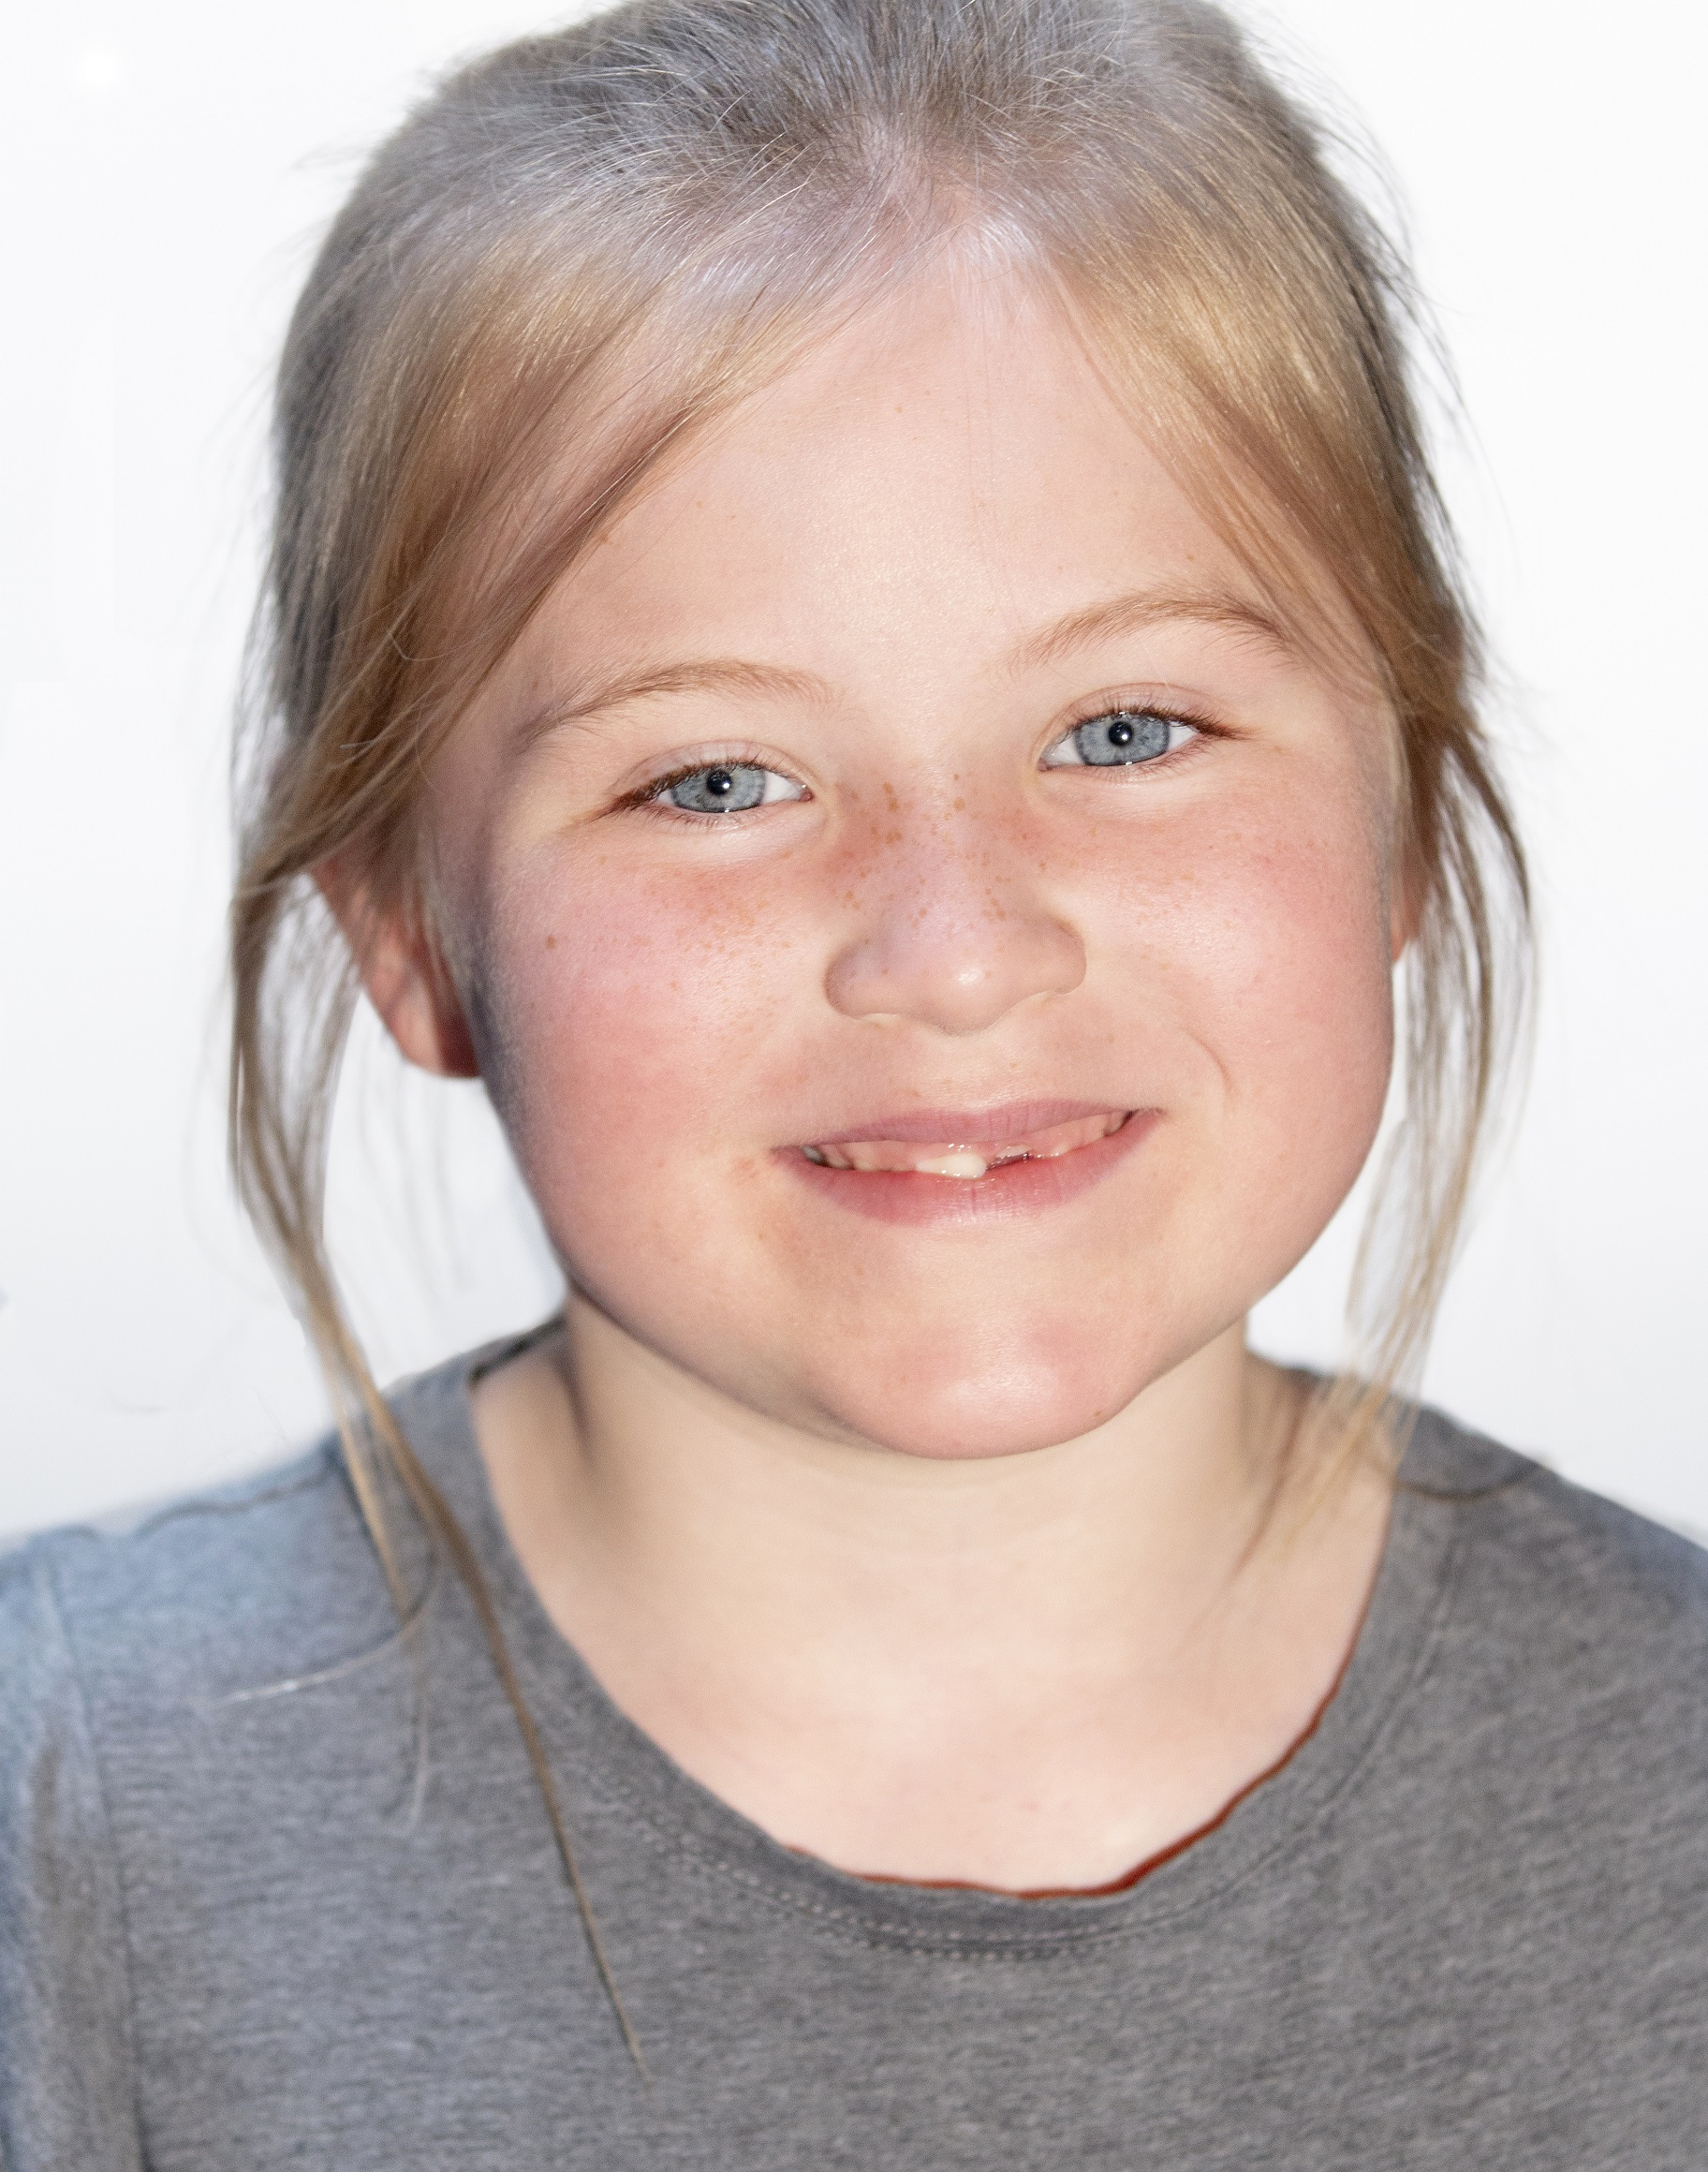 Ellie Thomas Headshot